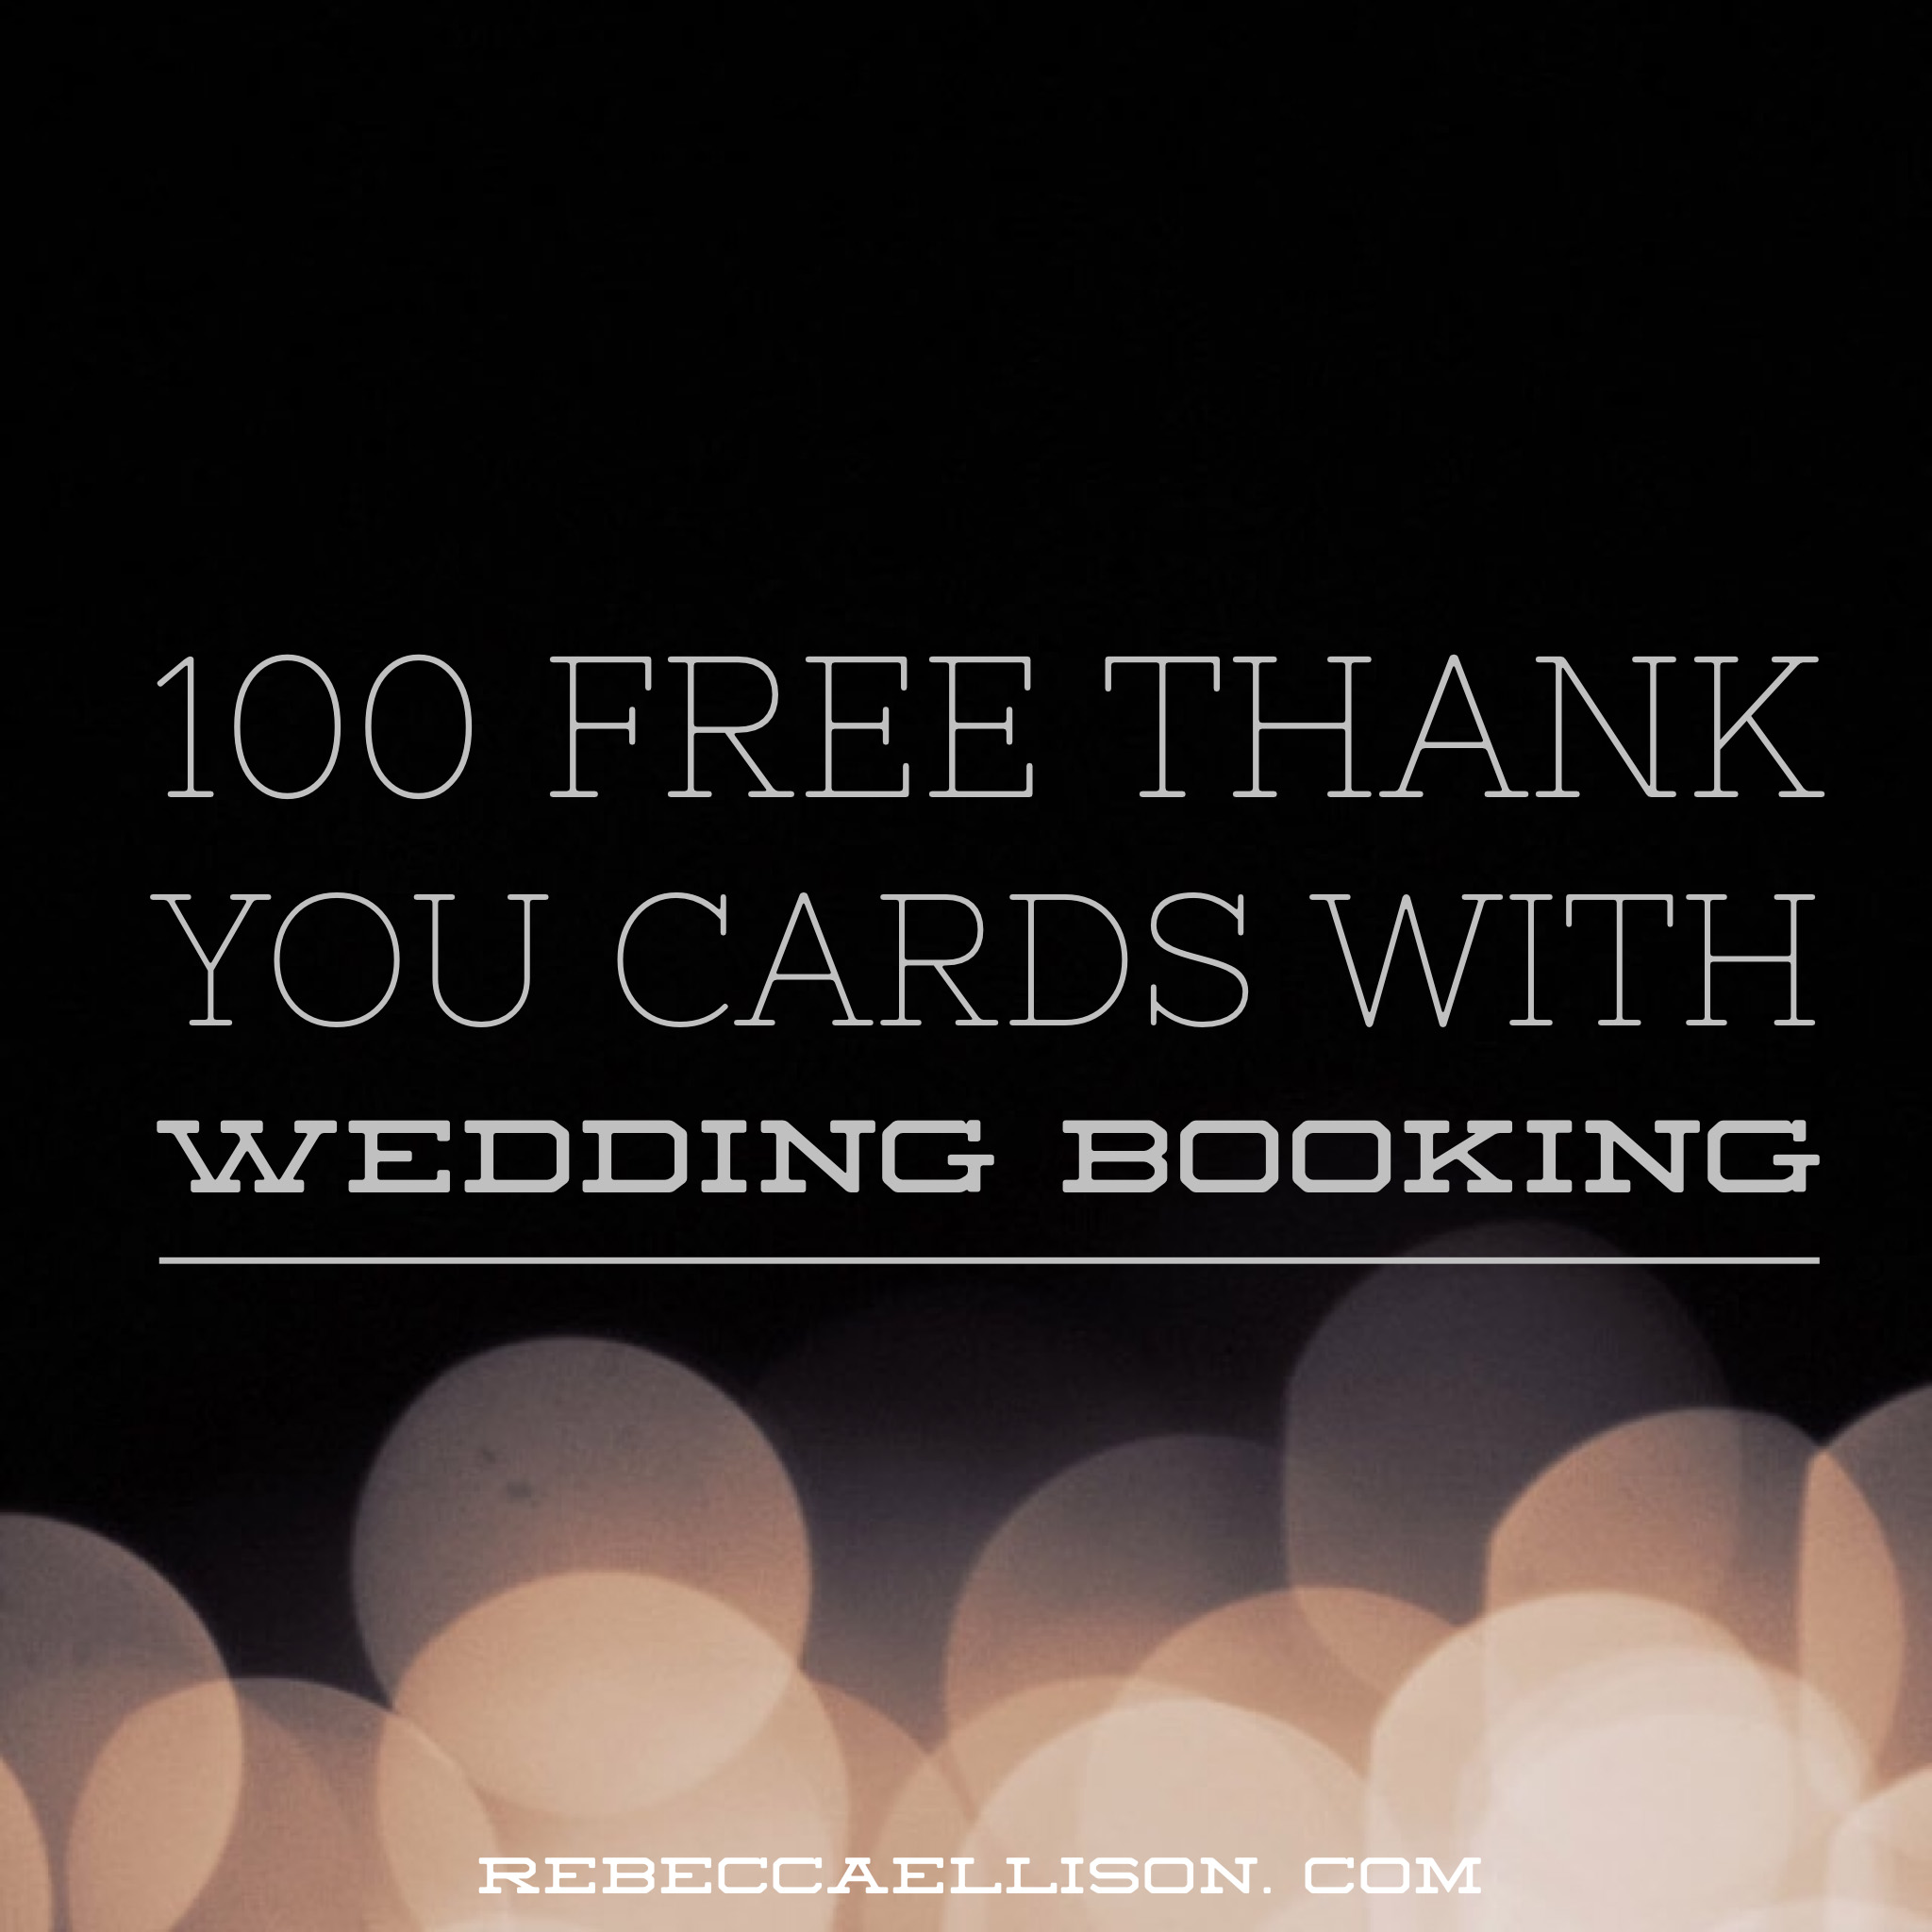 100 free wedding thank you cards with wedding booking promotion